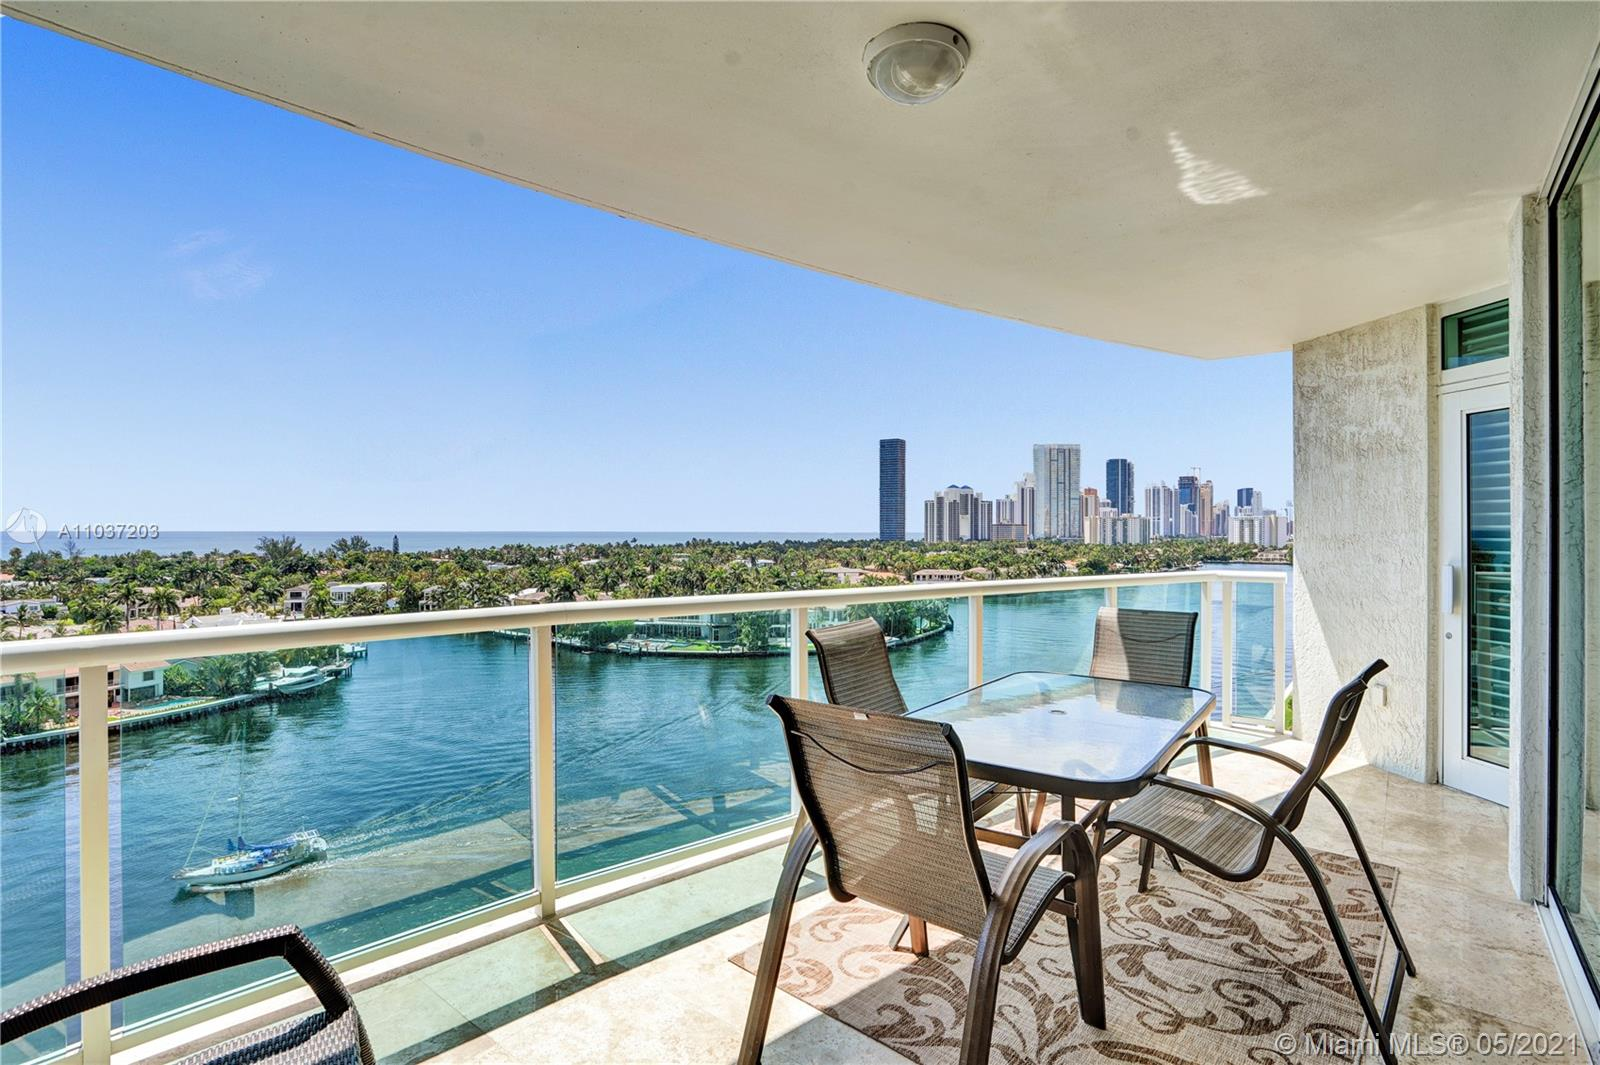 Photo of 20201 Country Club Dr #1006, Aventura, Florida, 33180 - Imagine having lunch in this balcony!